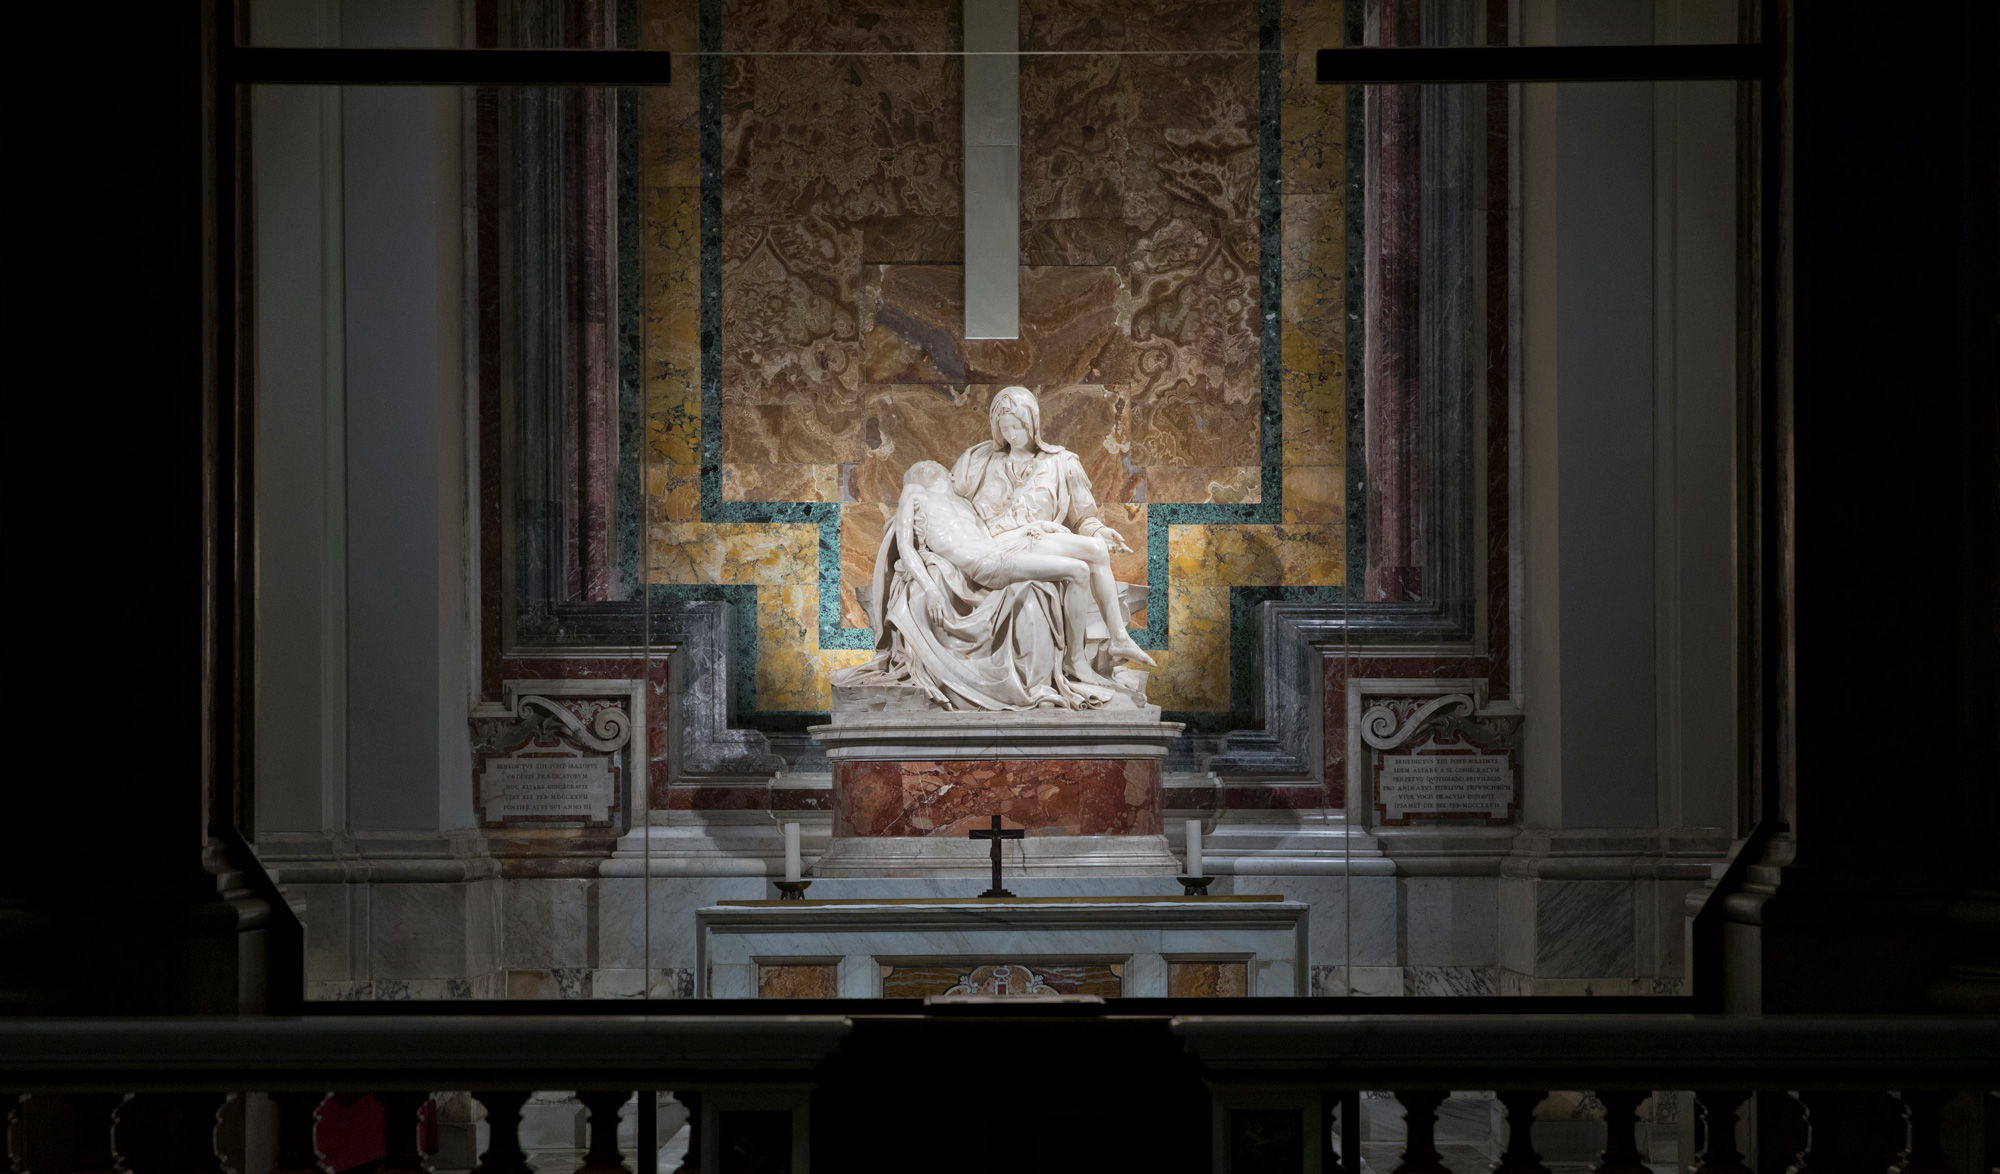 the Pietà in St. Peter's Basilica